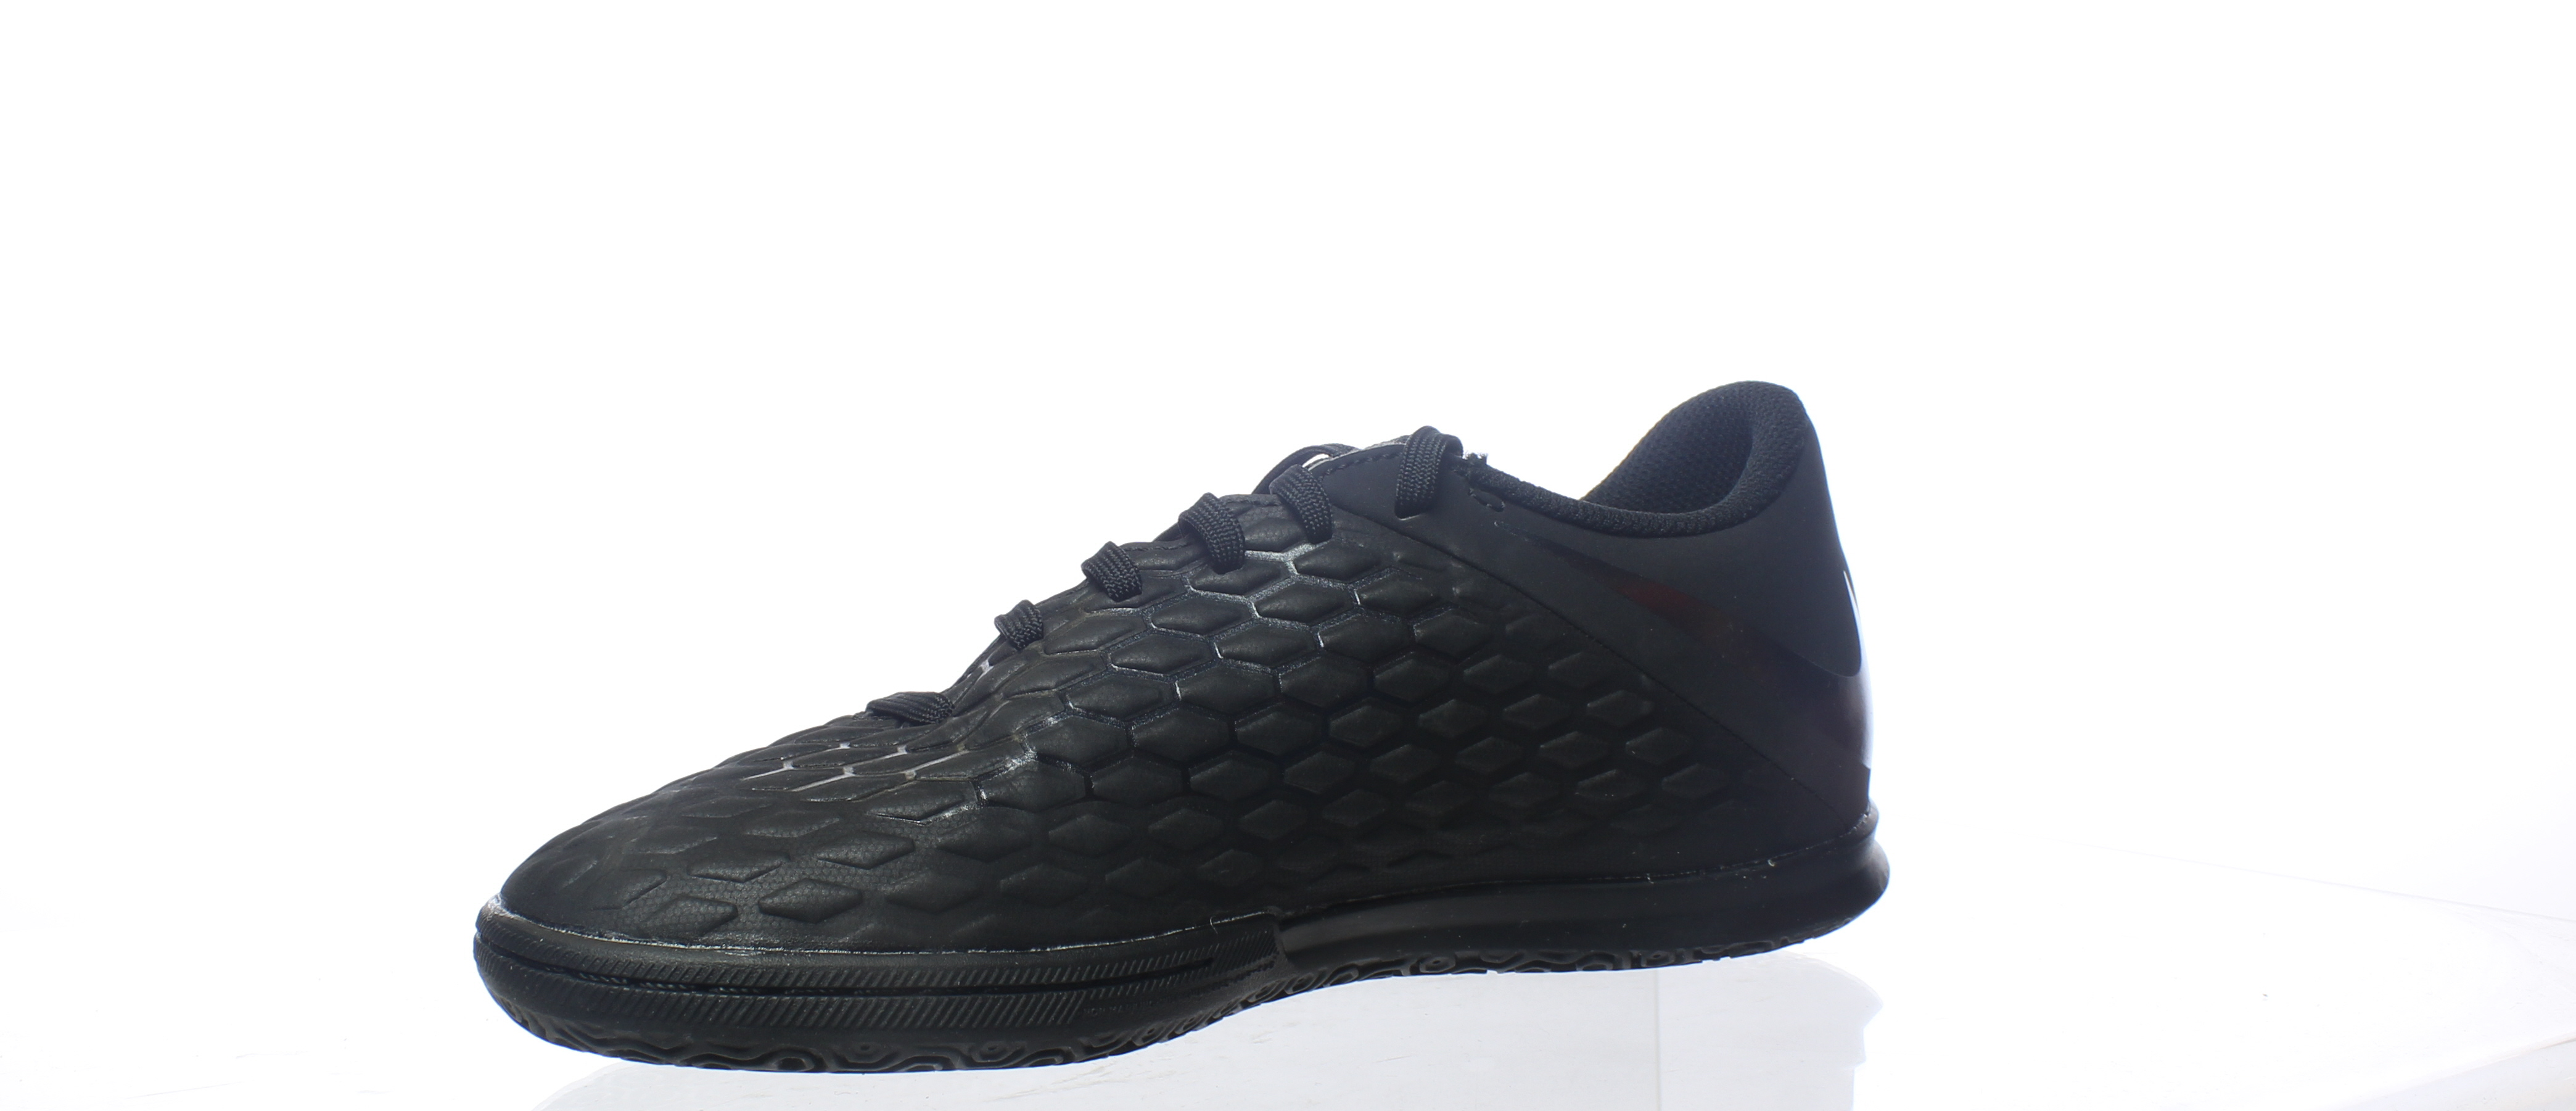 392c4df1198 Nike Mens Hypervenom Phantomx 3 Club Ic Black Indoor Soccer Shoes ...